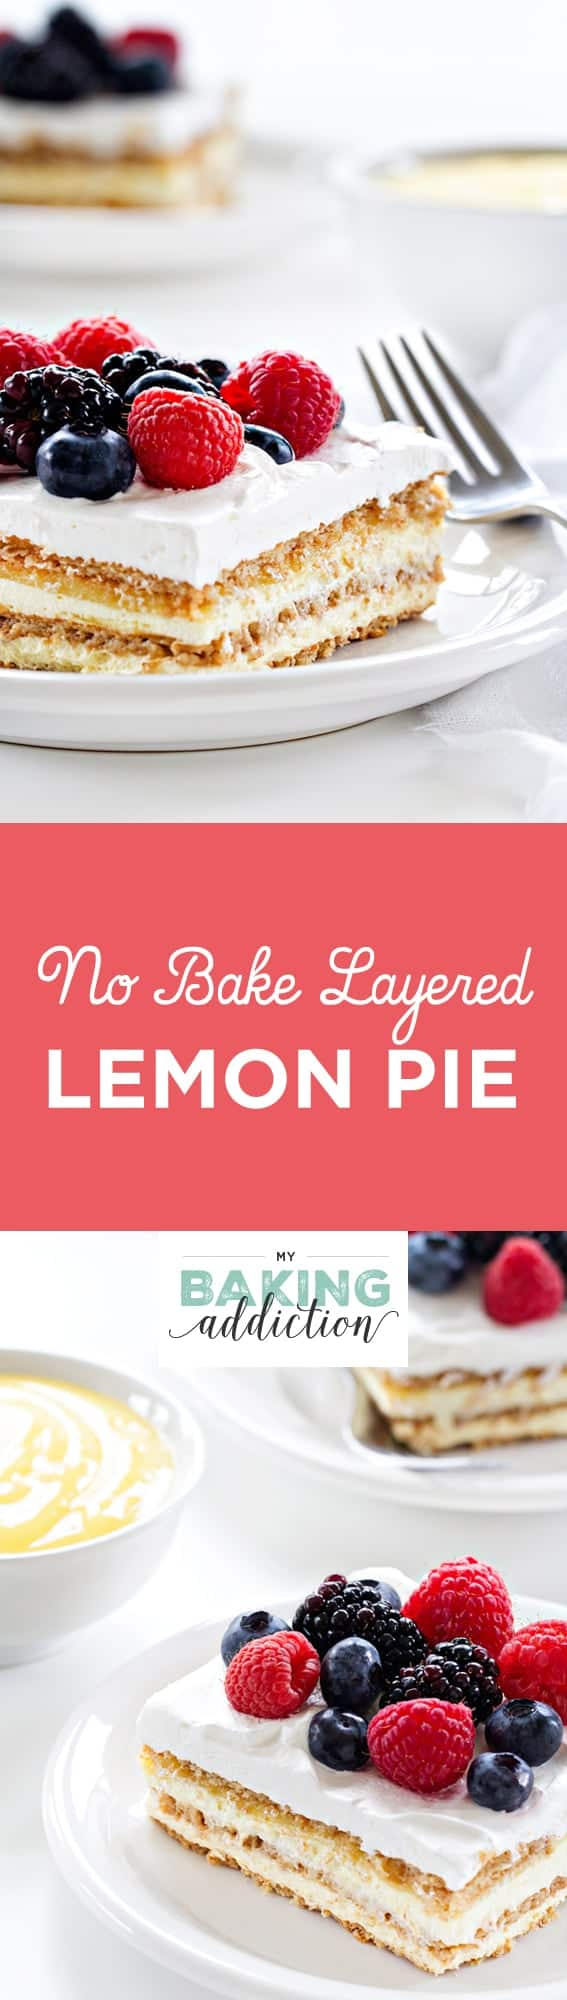 No Bake Layered Lemon Pie couldn't be easier. A great dessert for a family gathering.